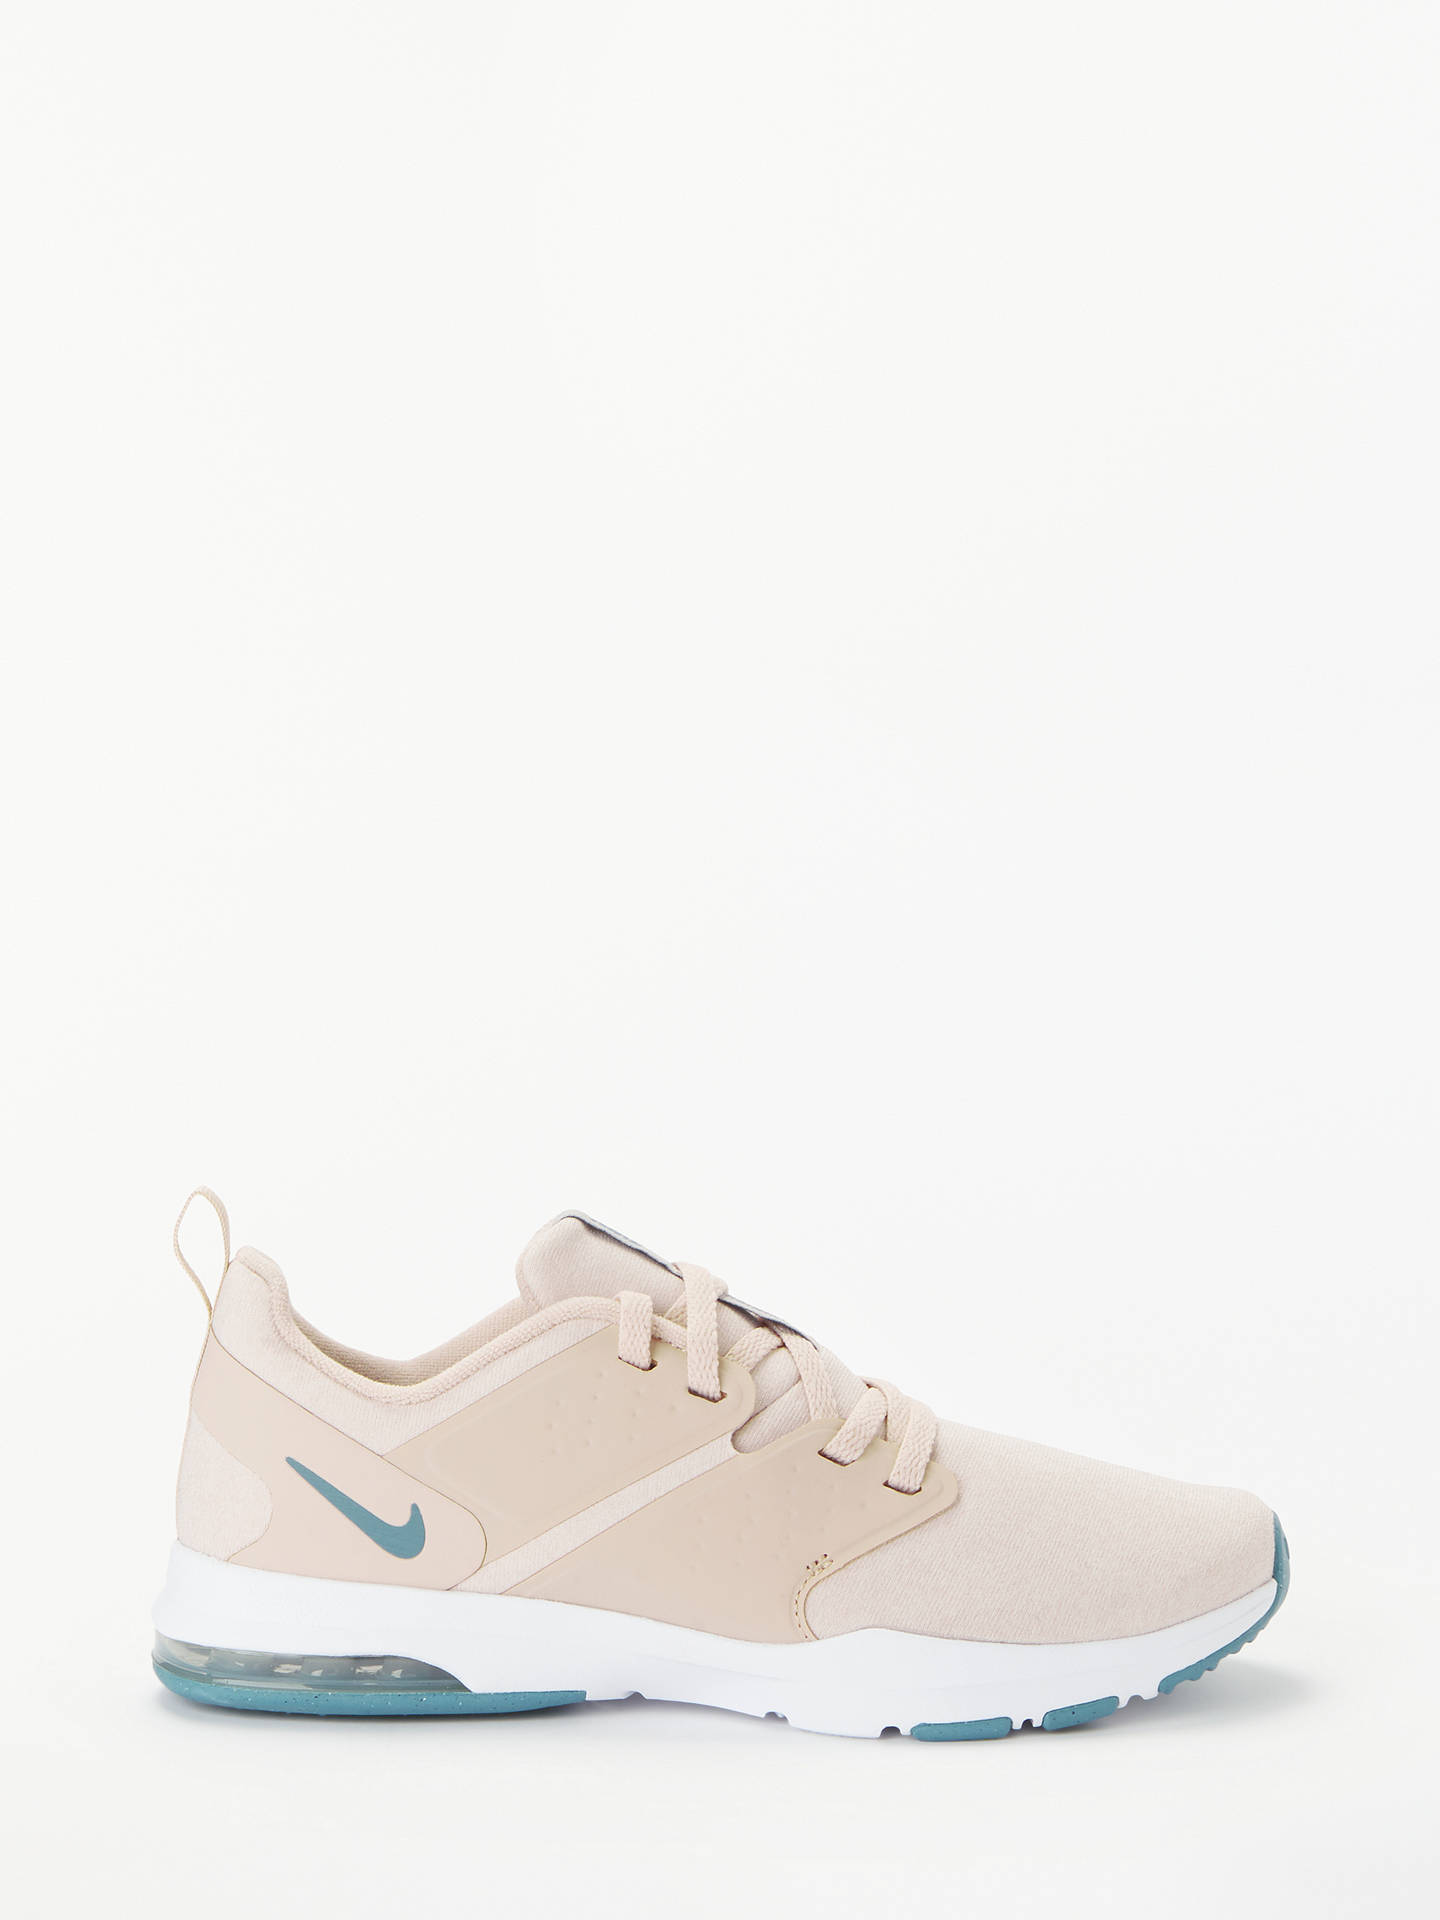 9993e1918ece1 Buy Nike Air Bella TR Women's Training Shoes, Particle Beige/Celestial Teal/ Guava ...